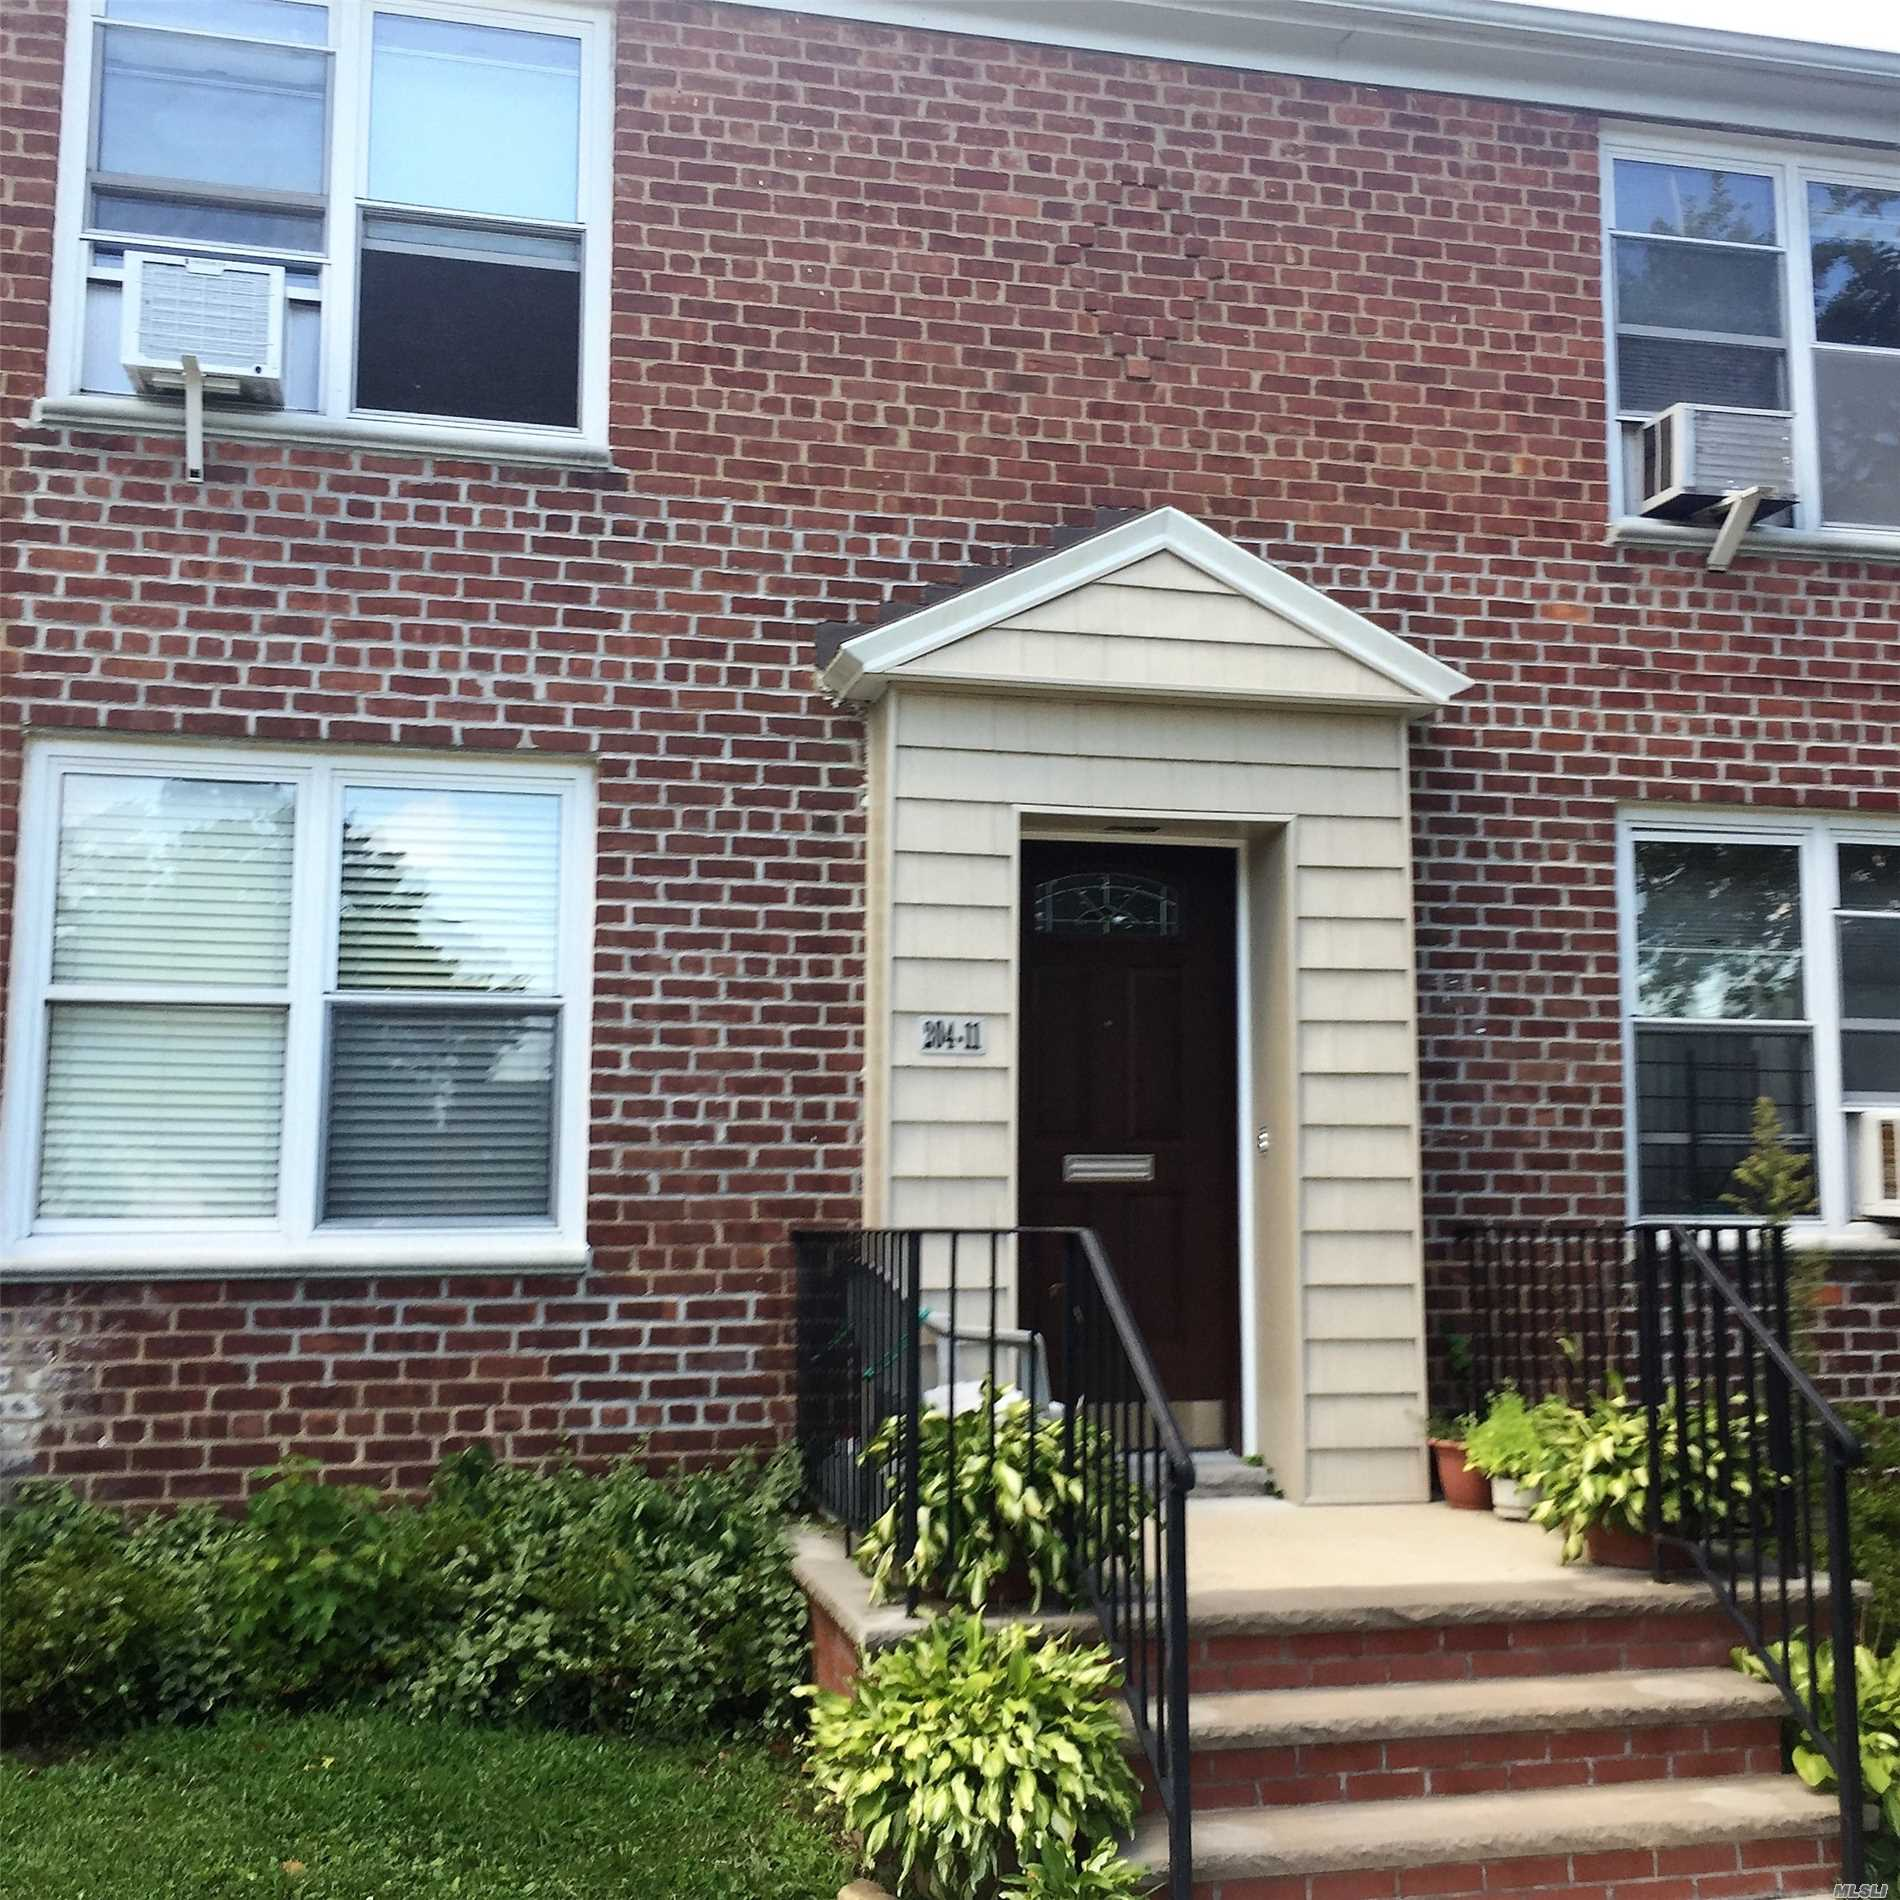 Baydale Tenant Corp. Spacious 1 Bedroom On Quiet Tree Lined Street. Close To Lirr, Bus, Shops, Hwys. First Floor. Easy Street Parking